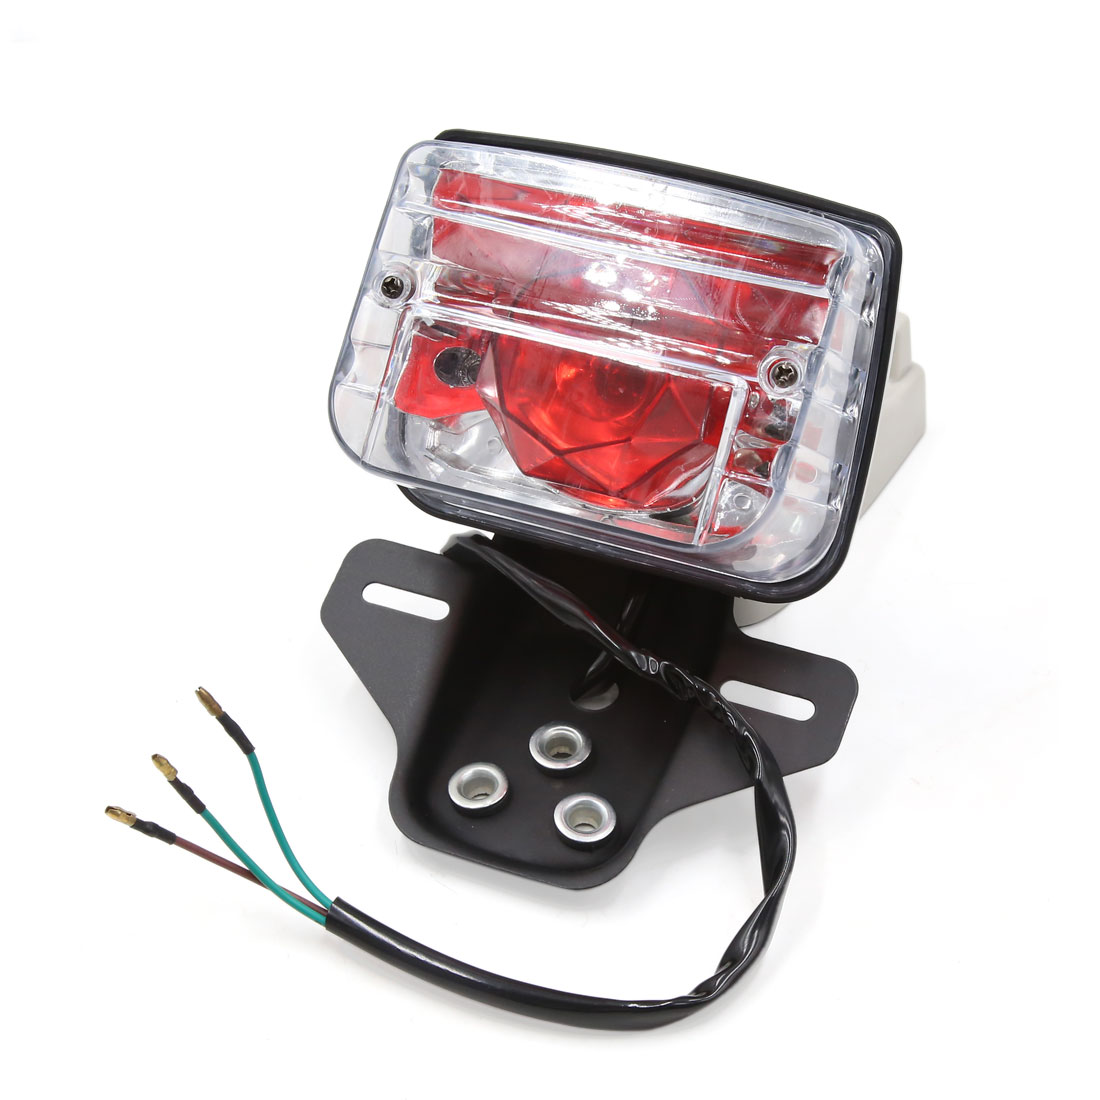 DC 12V Plastic Shell Red License Plate Lamp Motorcycle Tail Light for CG125 - image 4 of 4